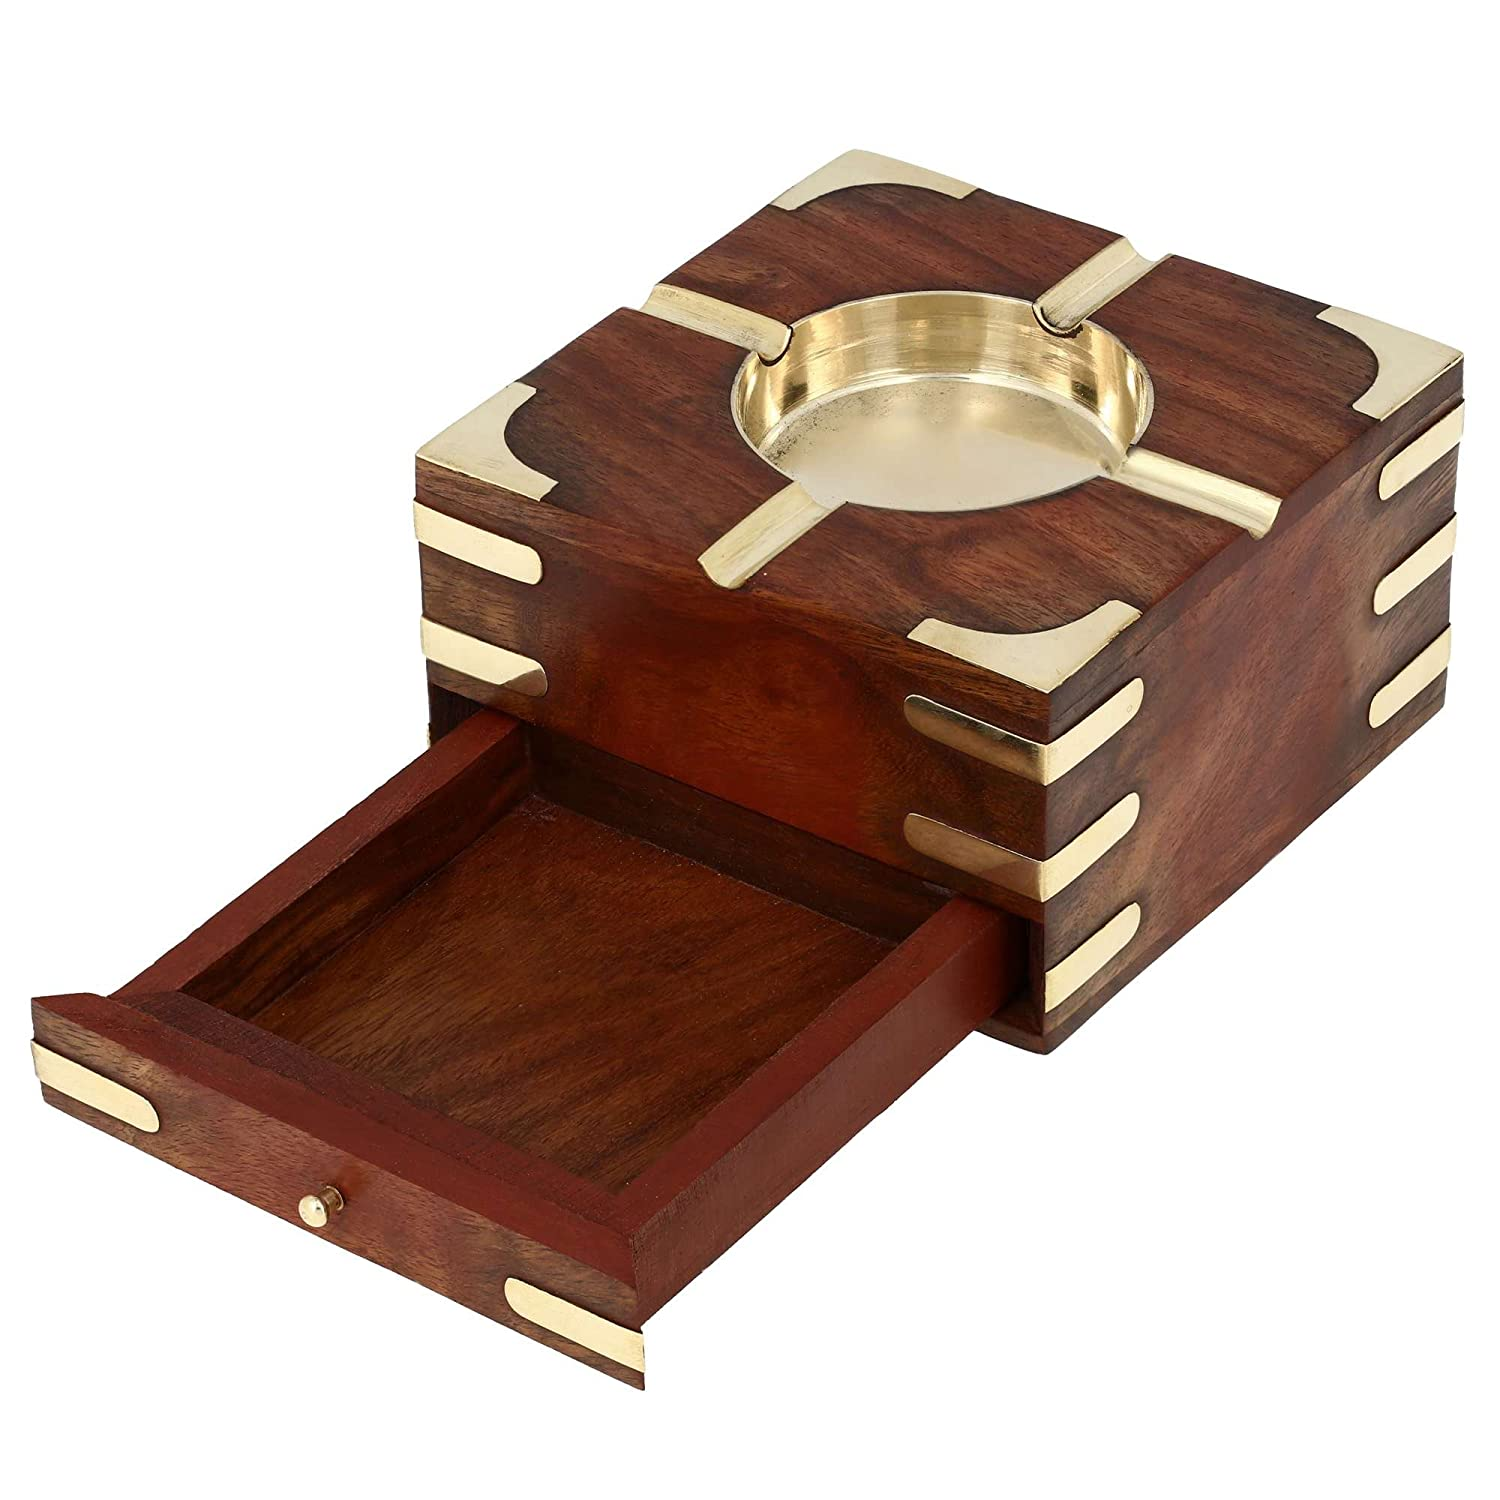 quality lid boxes engraved of hinge tree p decor life locking gold with home decorative design wood brown wooden premium box